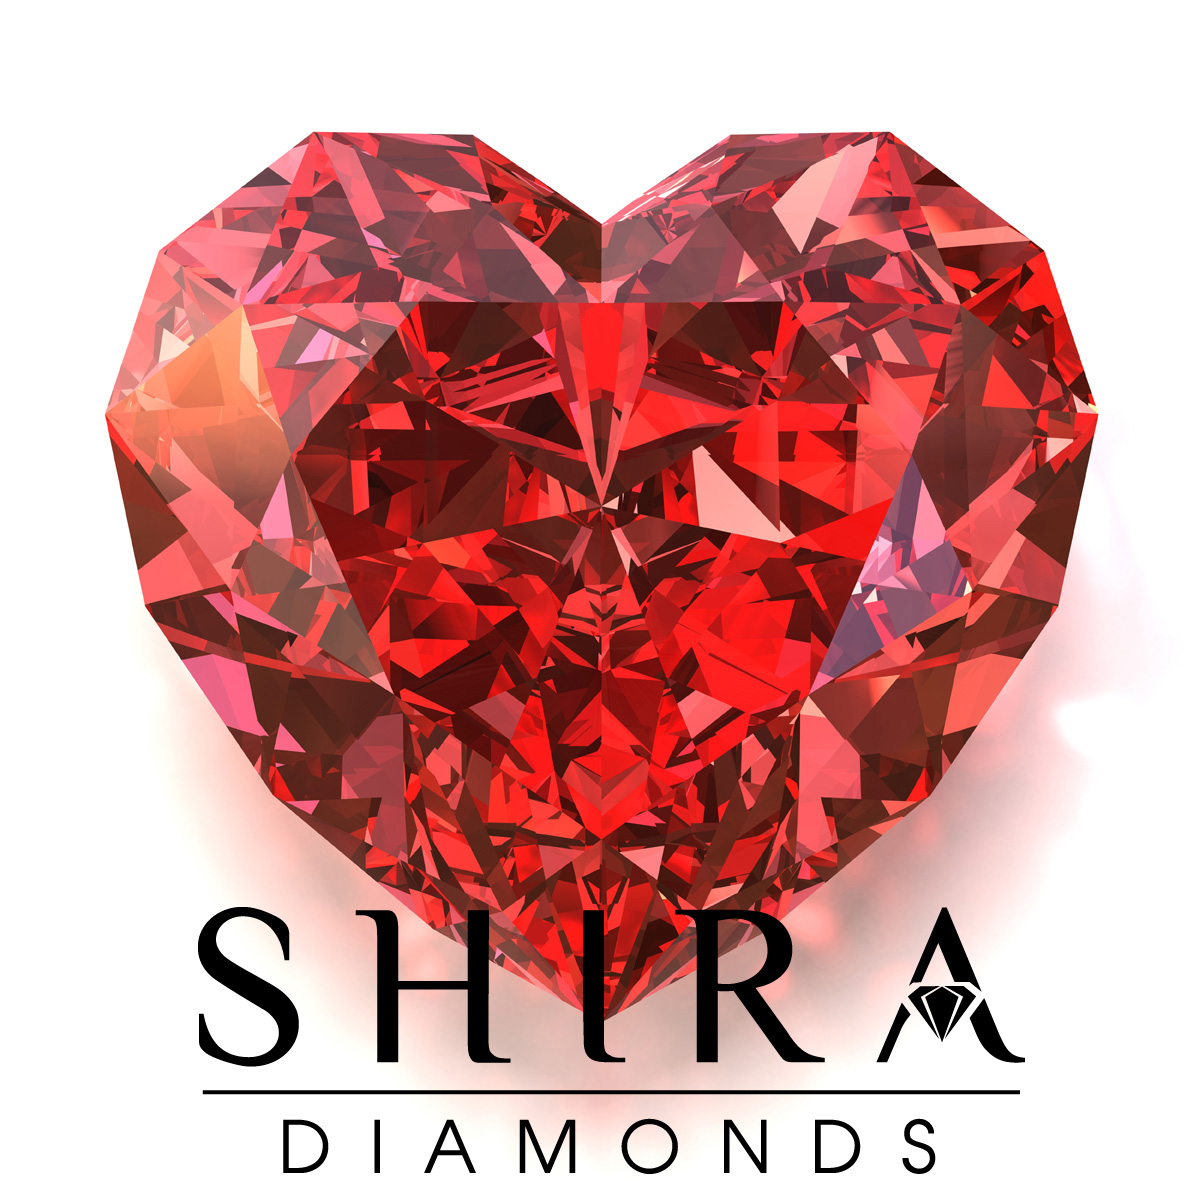 diamond-hearts-dallas-shira-diamonds